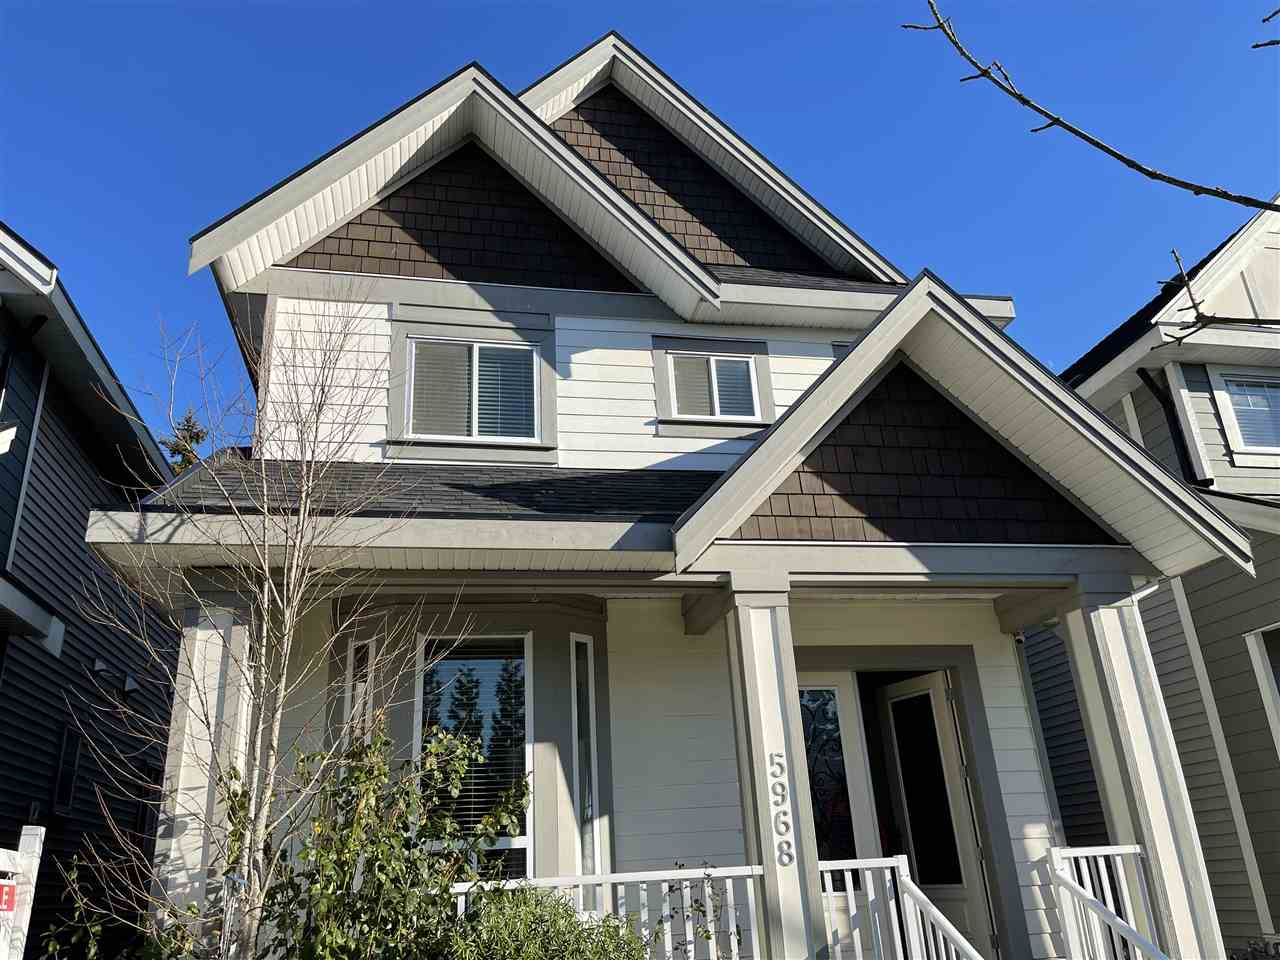 5968 131 STREET - Panorama Ridge House/Single Family for sale, 7 Bedrooms (R2526365) - #1